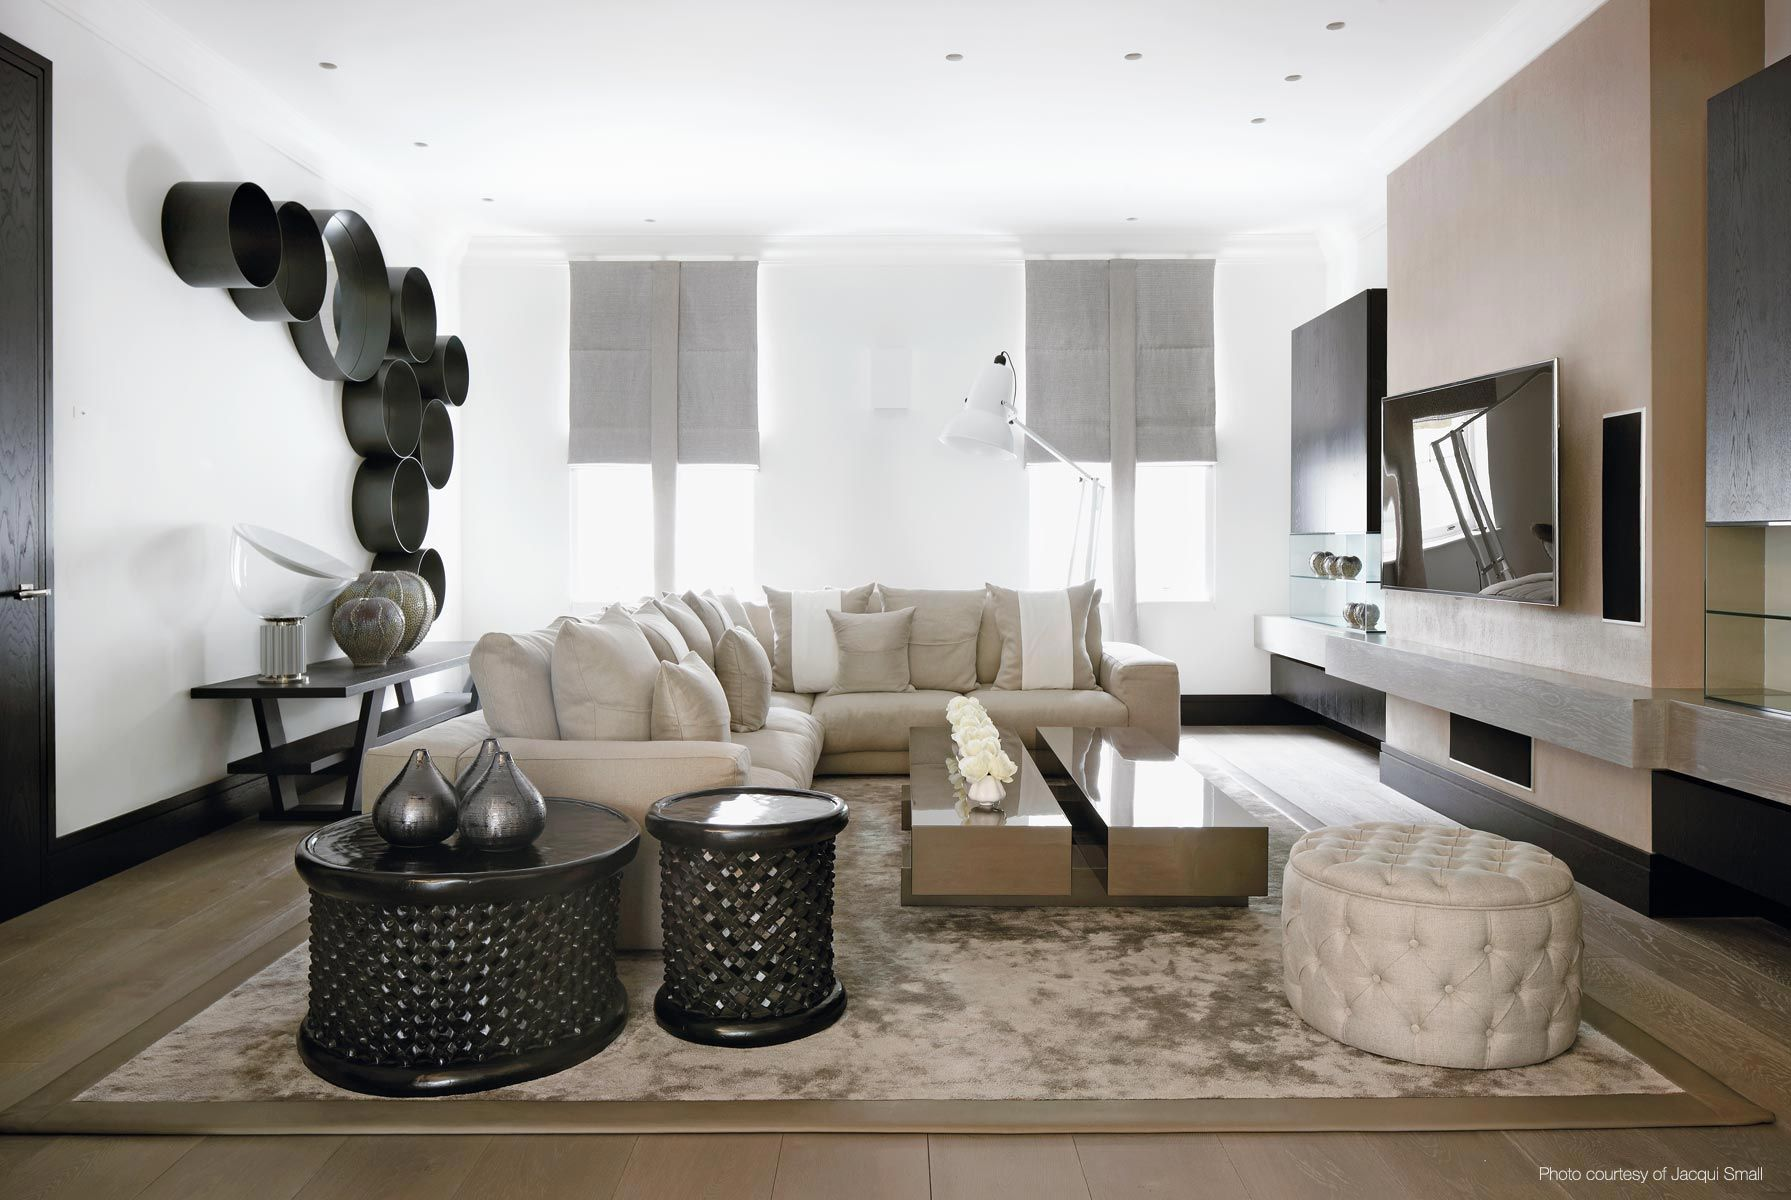 Living Room Design Contemporary Prepossessing Kelly Hoppen Couturekellyhoppen Interior Designcontemporary Review